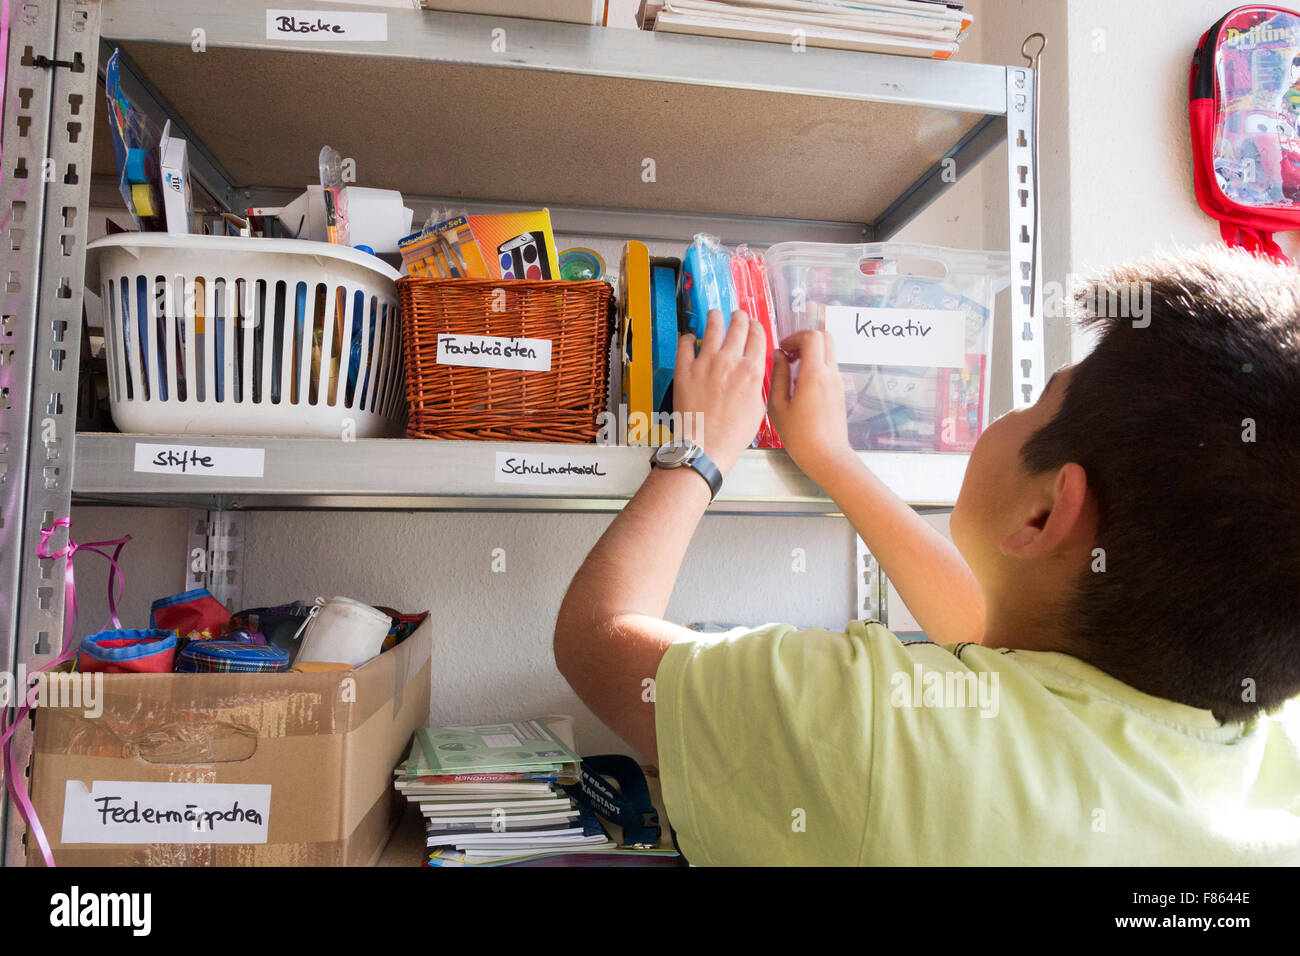 A refugee boy looks at toys on a shelf. Supporters of relief organisation Willkommen in Mülheim celebrate the - Stock Image